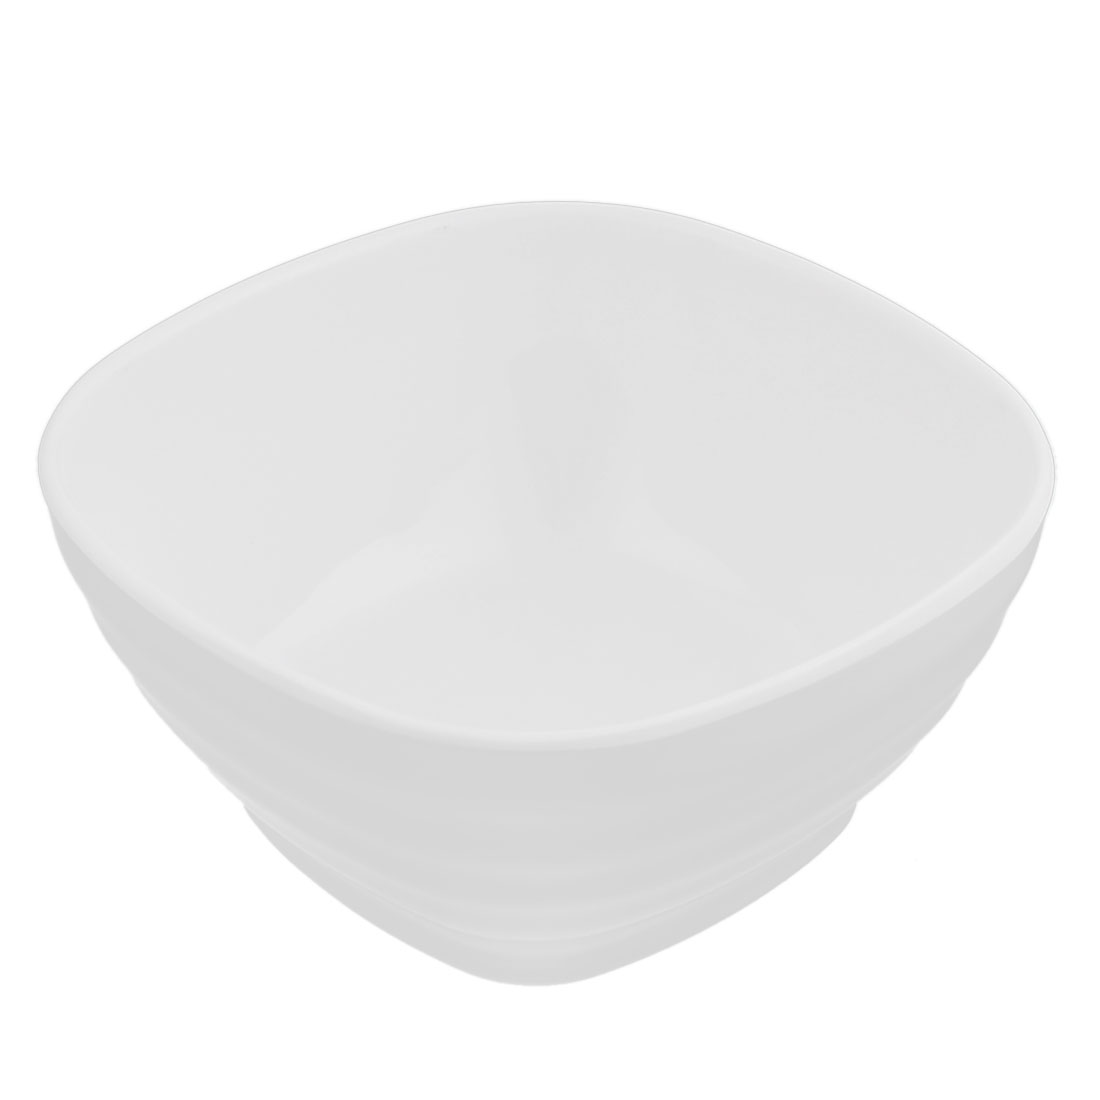 Plastic Square Shape Tableware Cereal Fruits Salad Dinner Bowl White